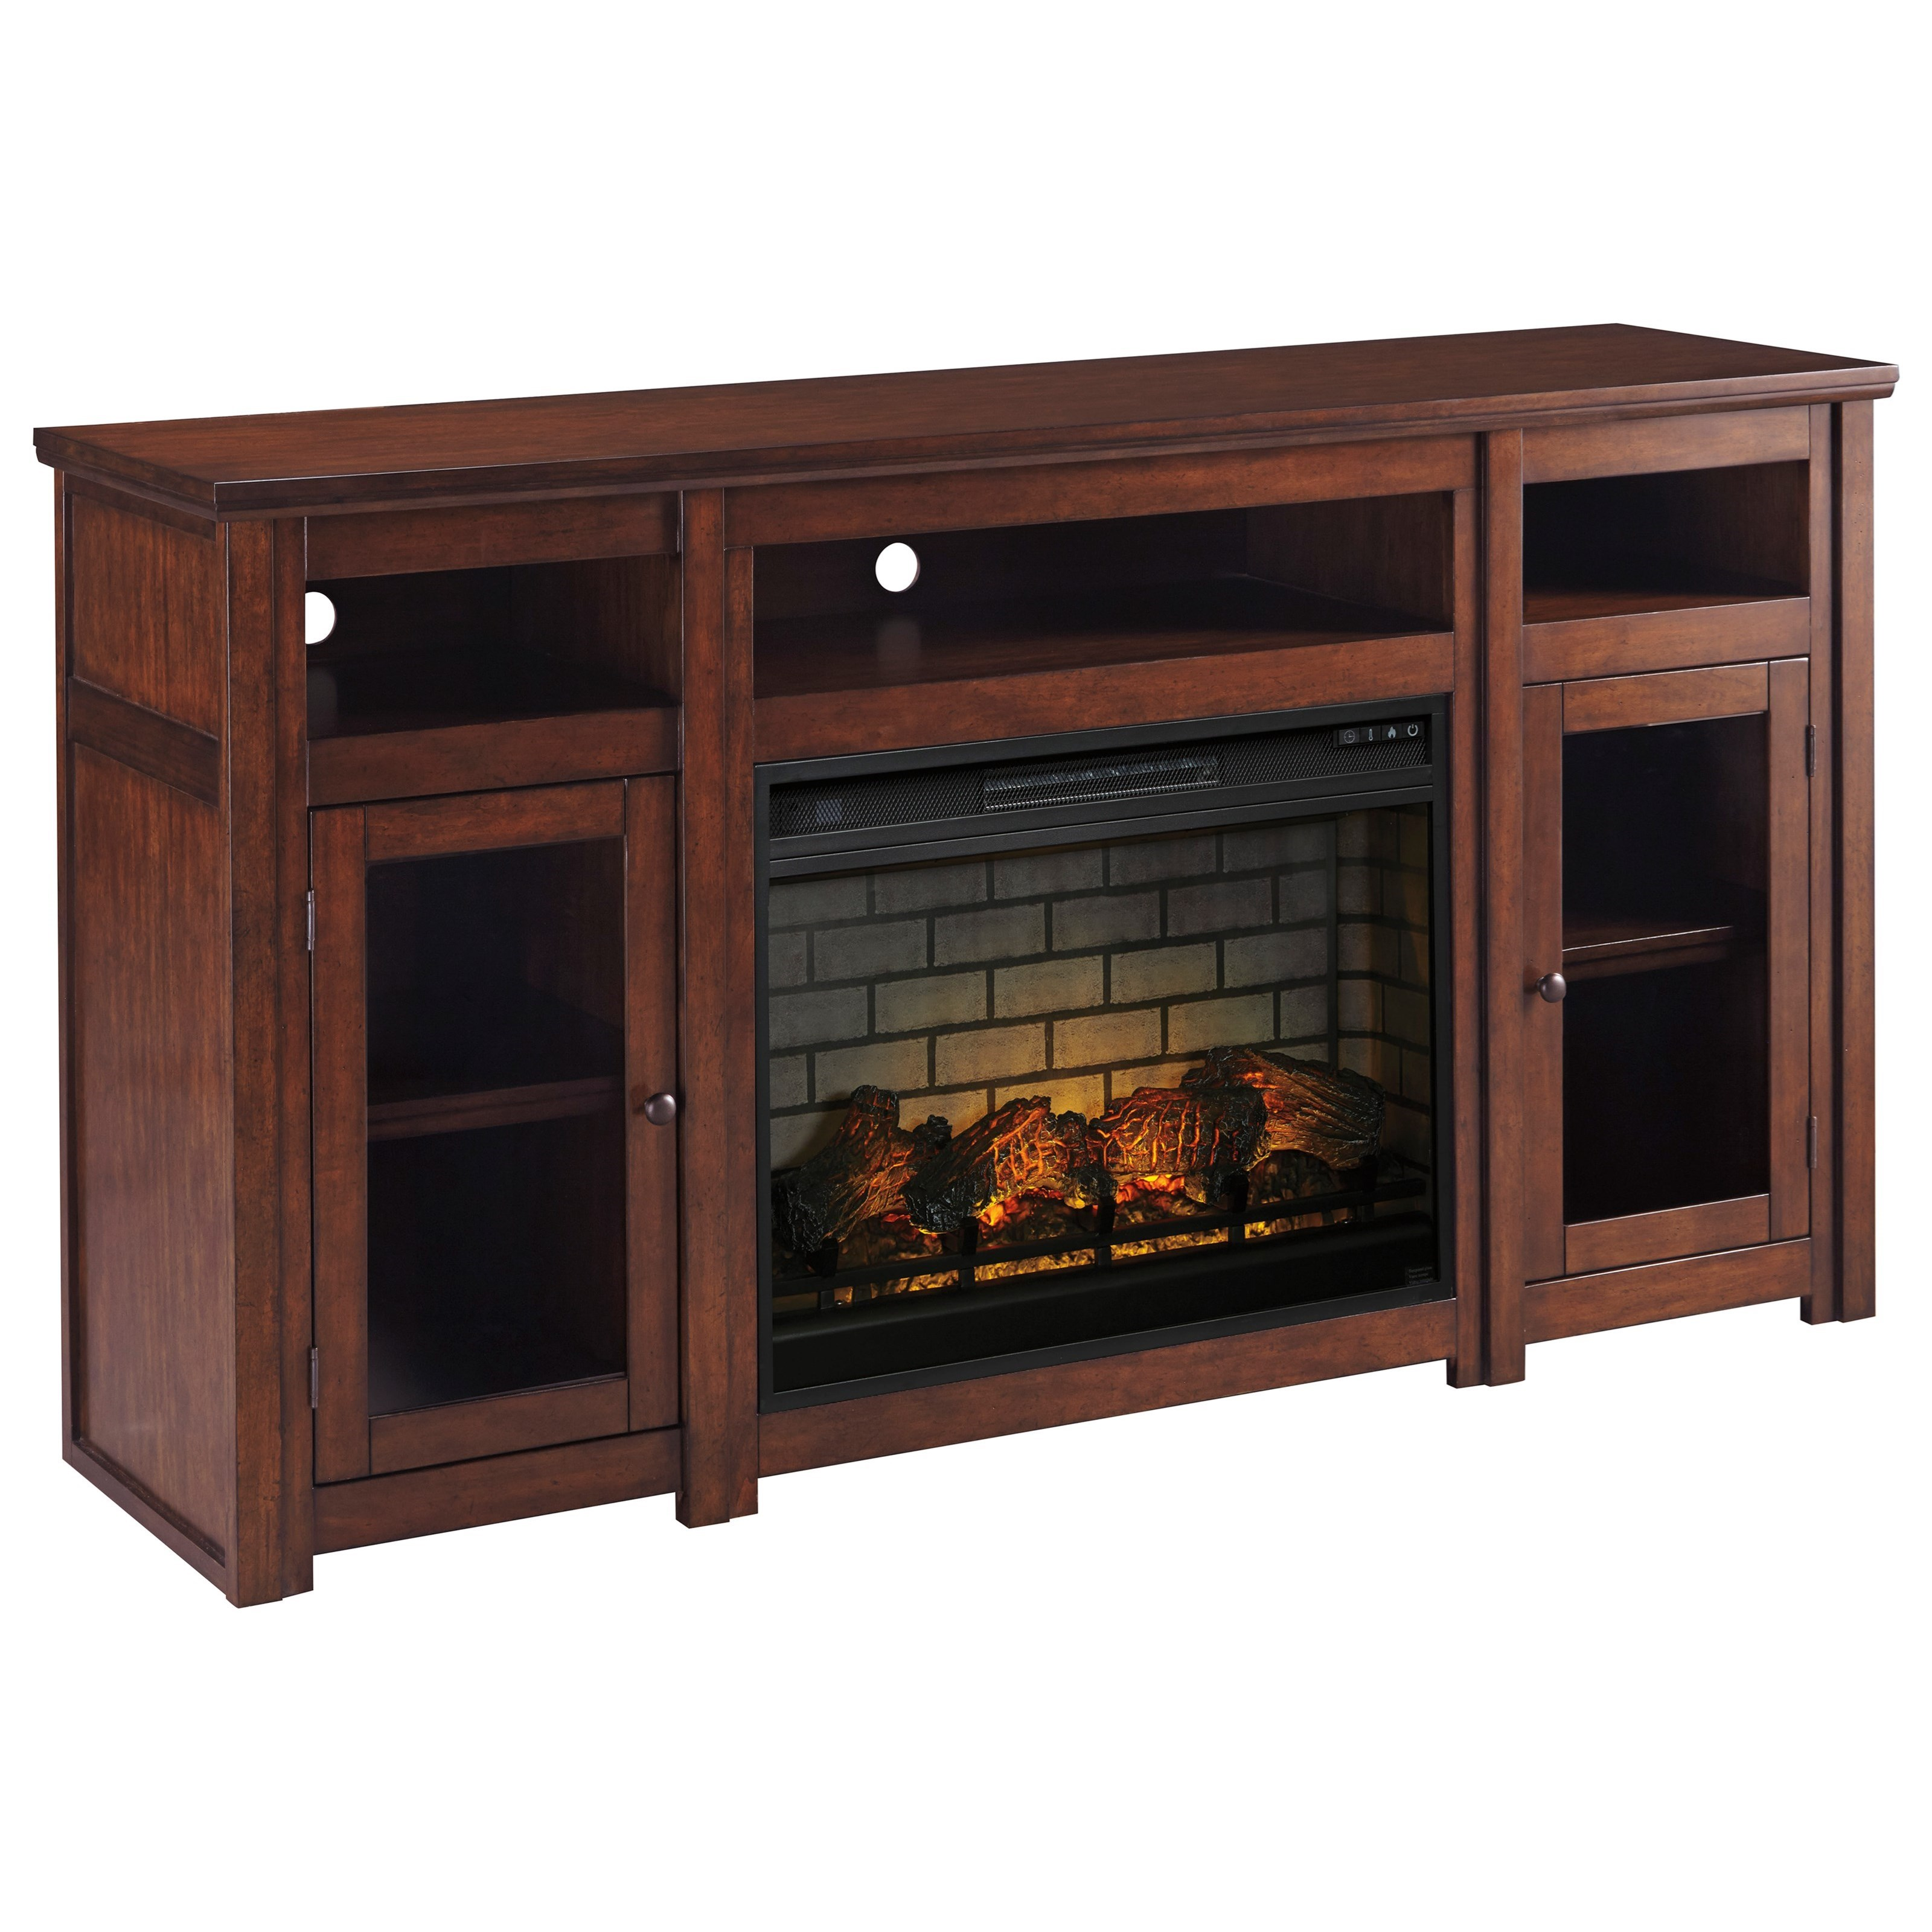 Harpan Extra Large TV Stand with Fireplace Insert by Signature Design by Ashley at Northeast Factory Direct